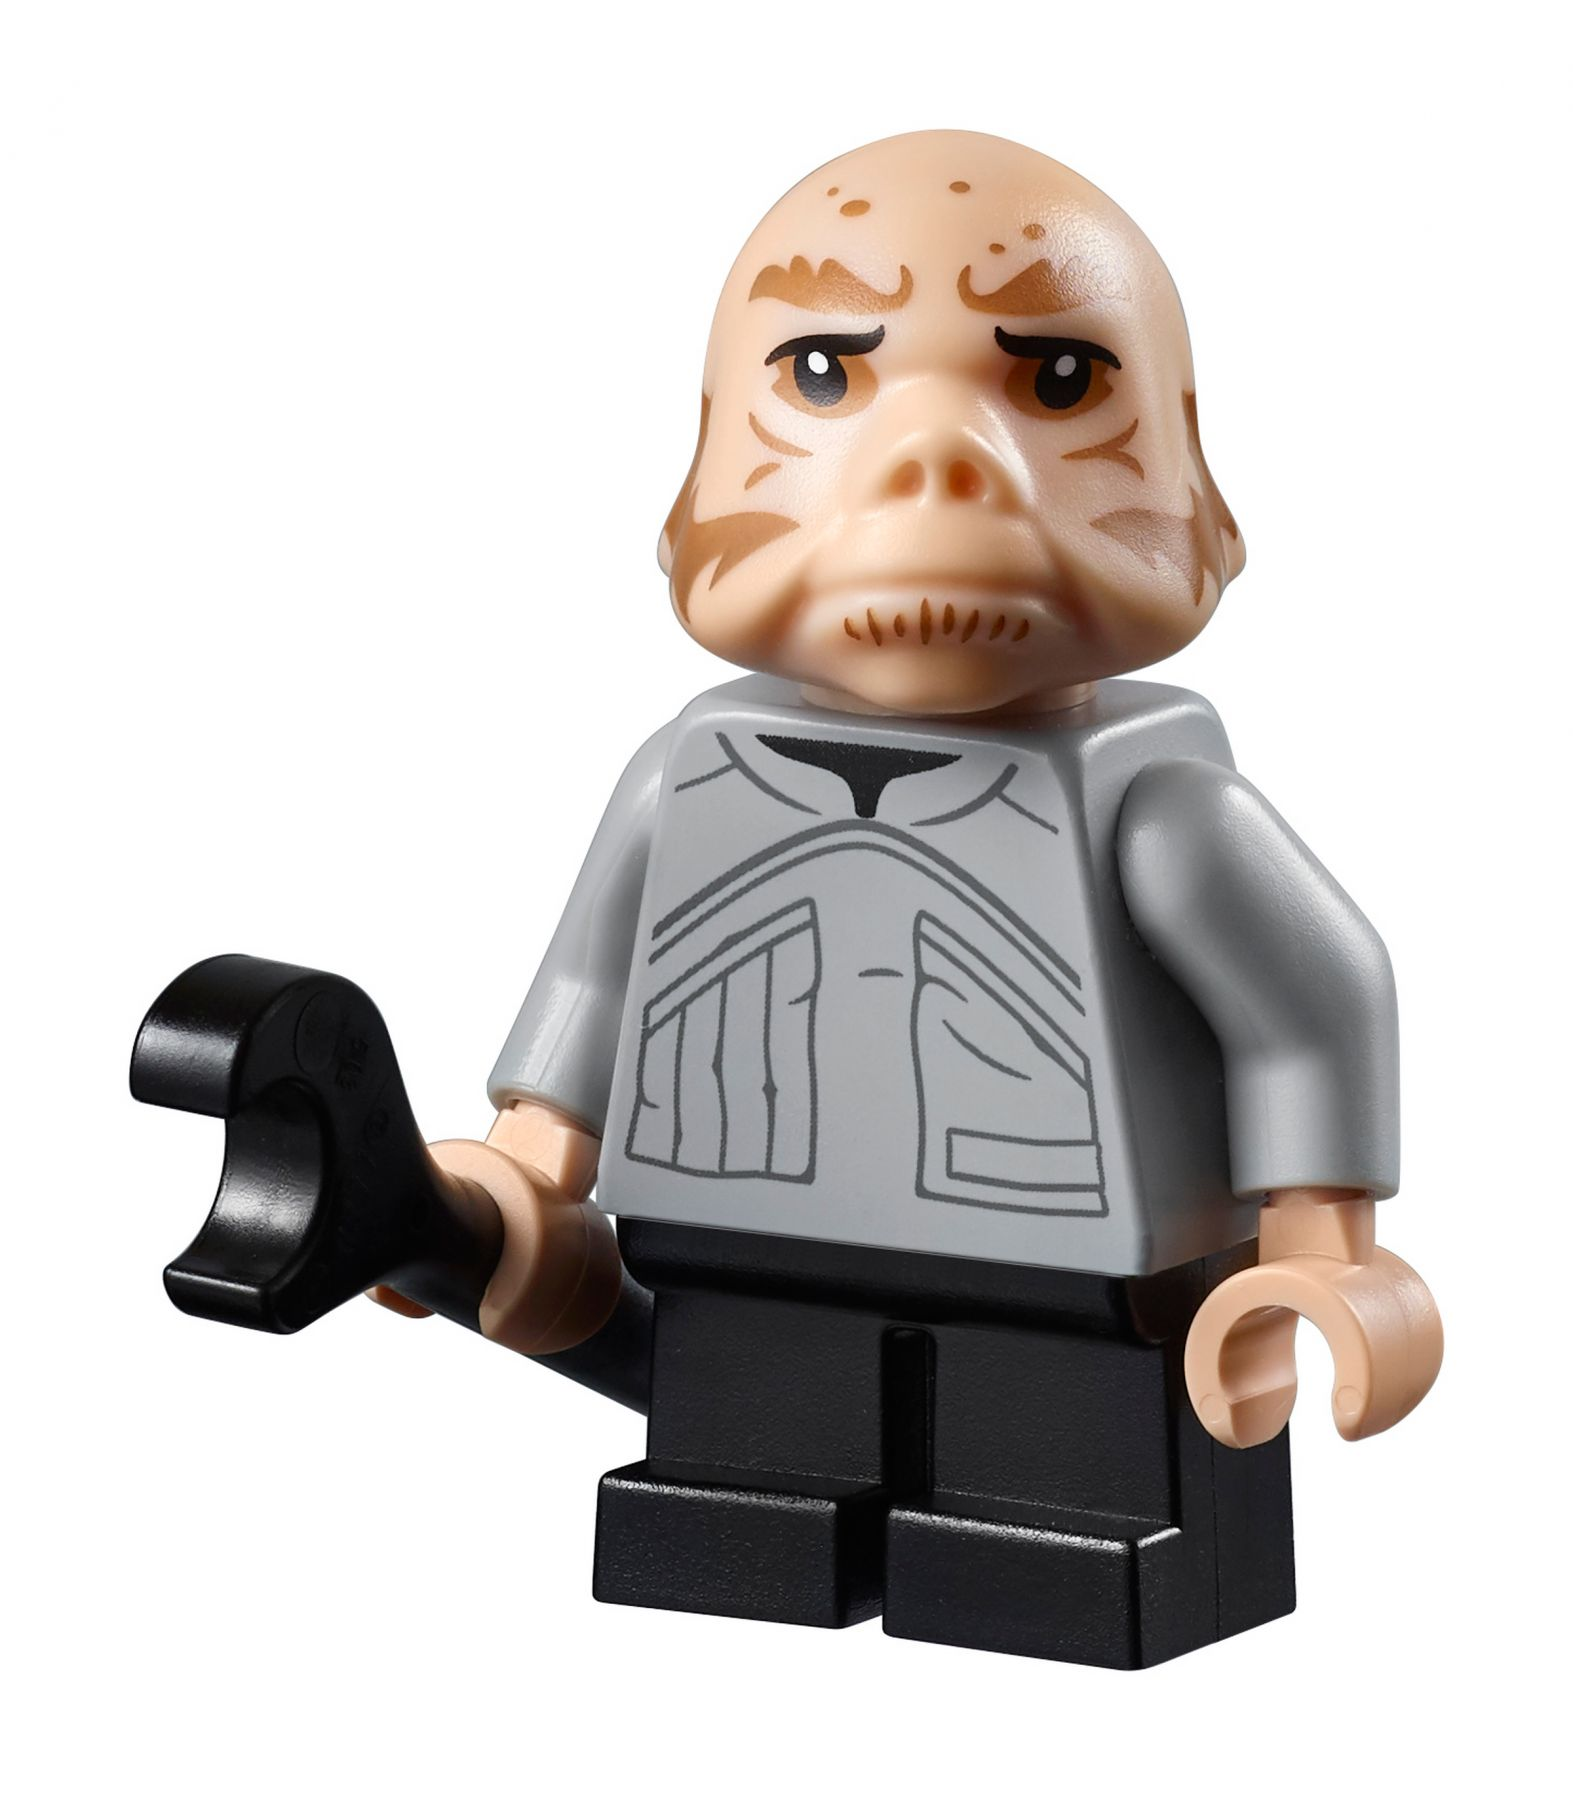 LEGO Star Wars 75222 Verrat in Cloud City™ LEGO_75222_alt22.jpg